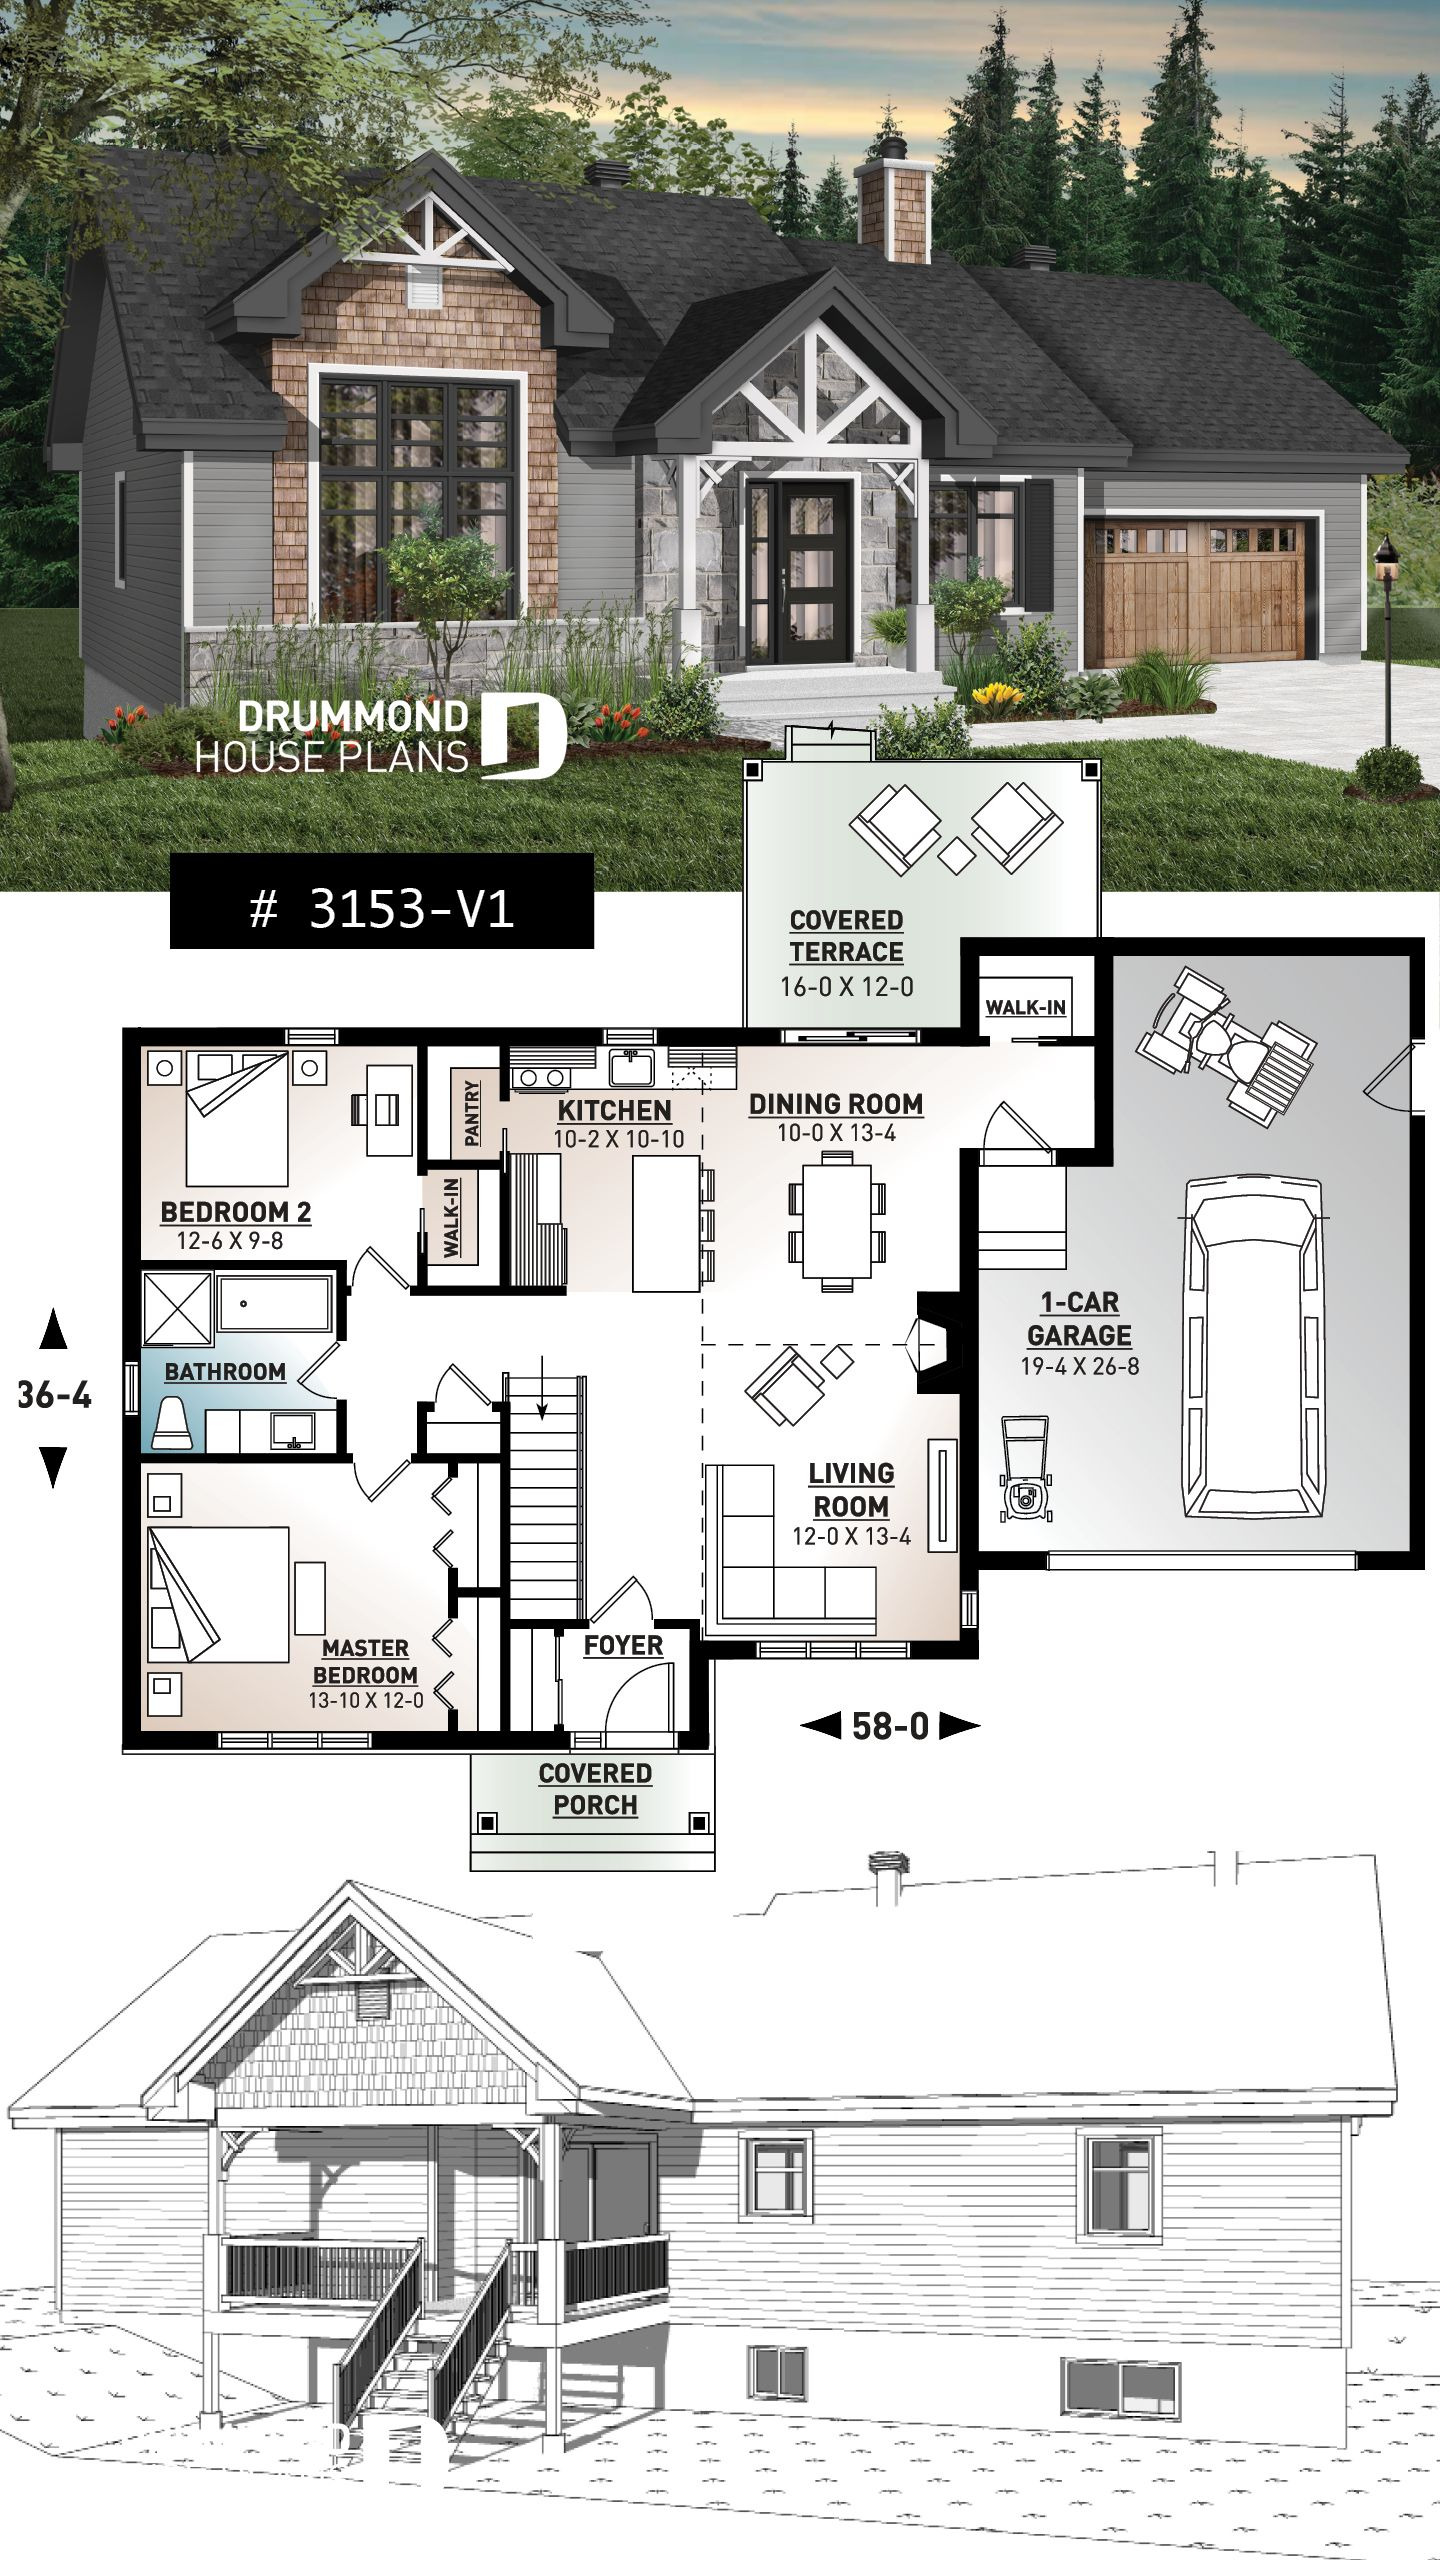 House Plans Ranch Style with Basement Luxury Craftsman Ranch Style Bungalow with Daylight Basement 2 to